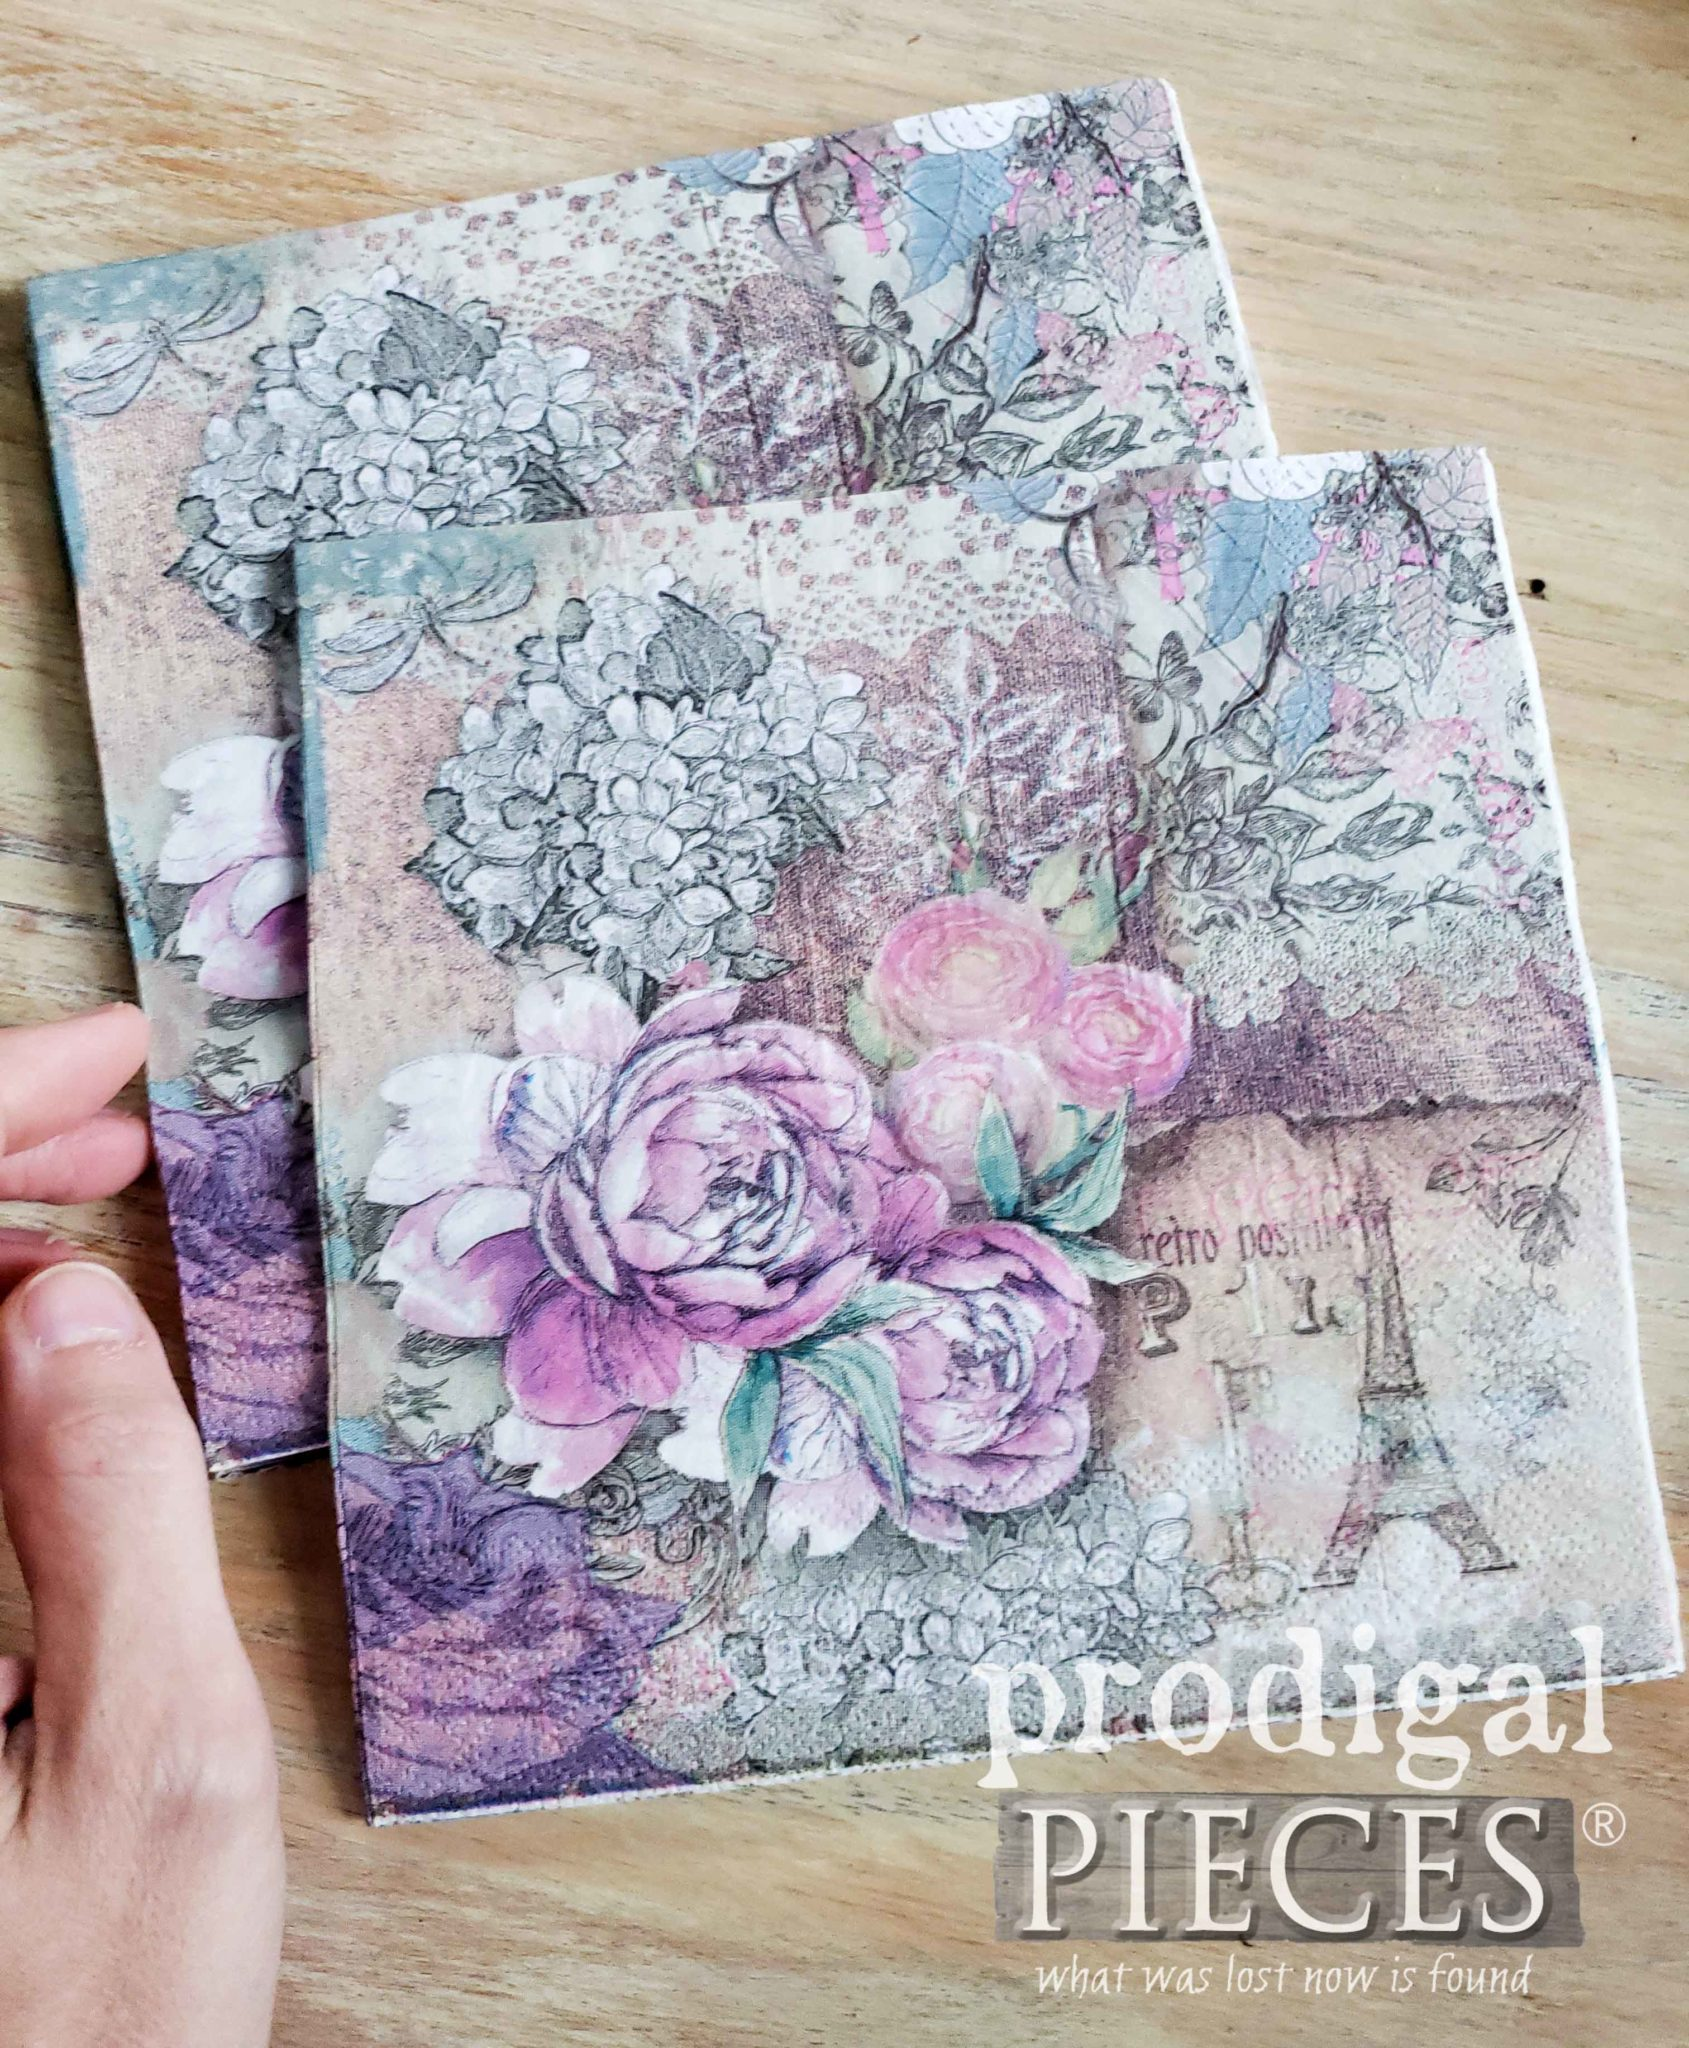 Decorative Napkins for Decoupage Furniture | Prodigal Pieces | prodigalpieces.com